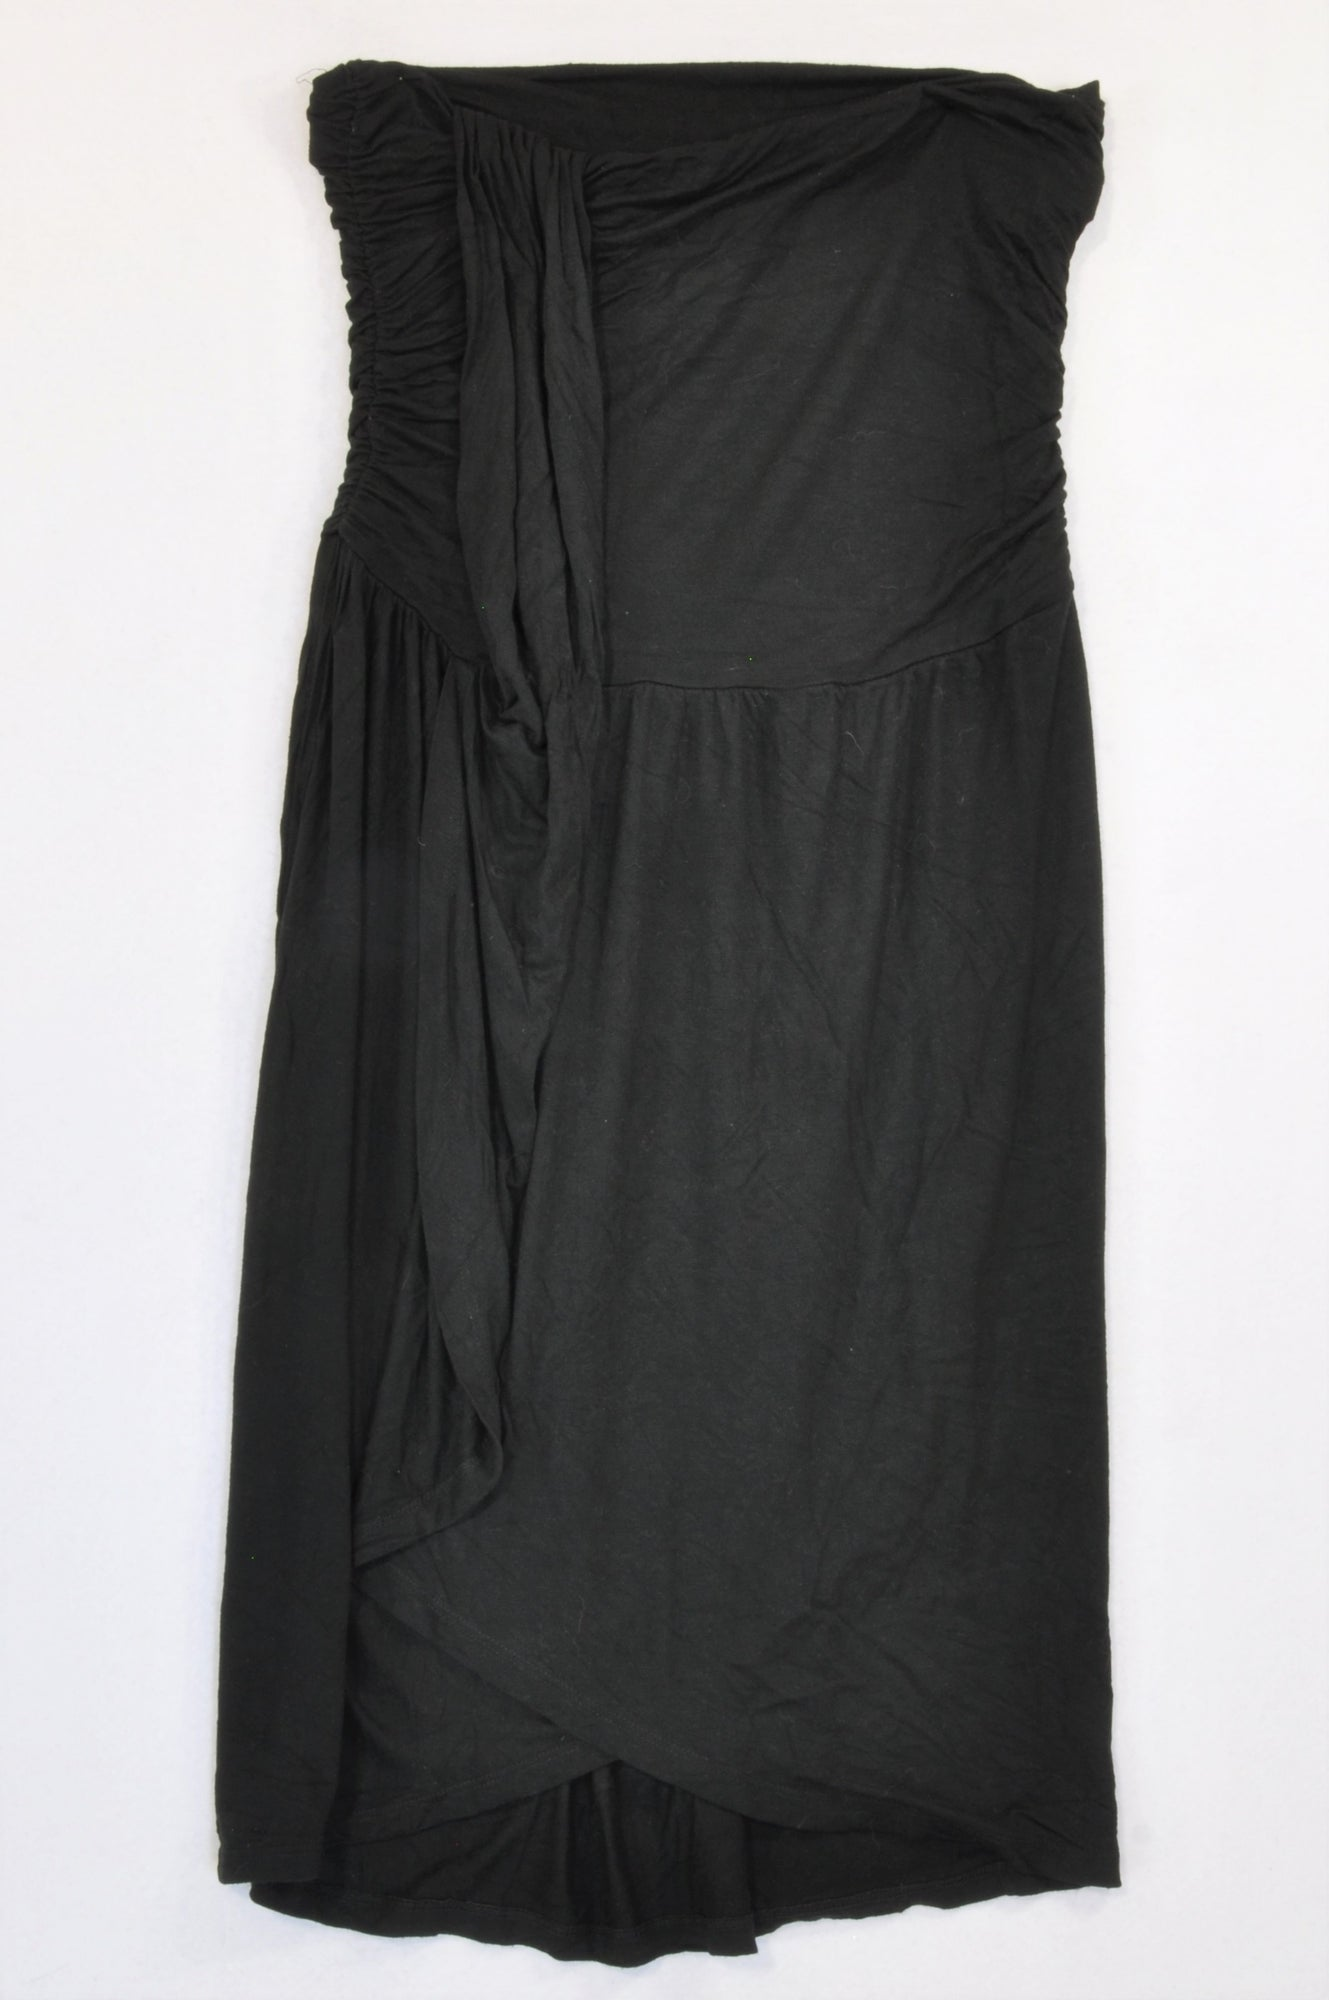 Woolworths Black Boobtube Cocktail Dress Women Size 10